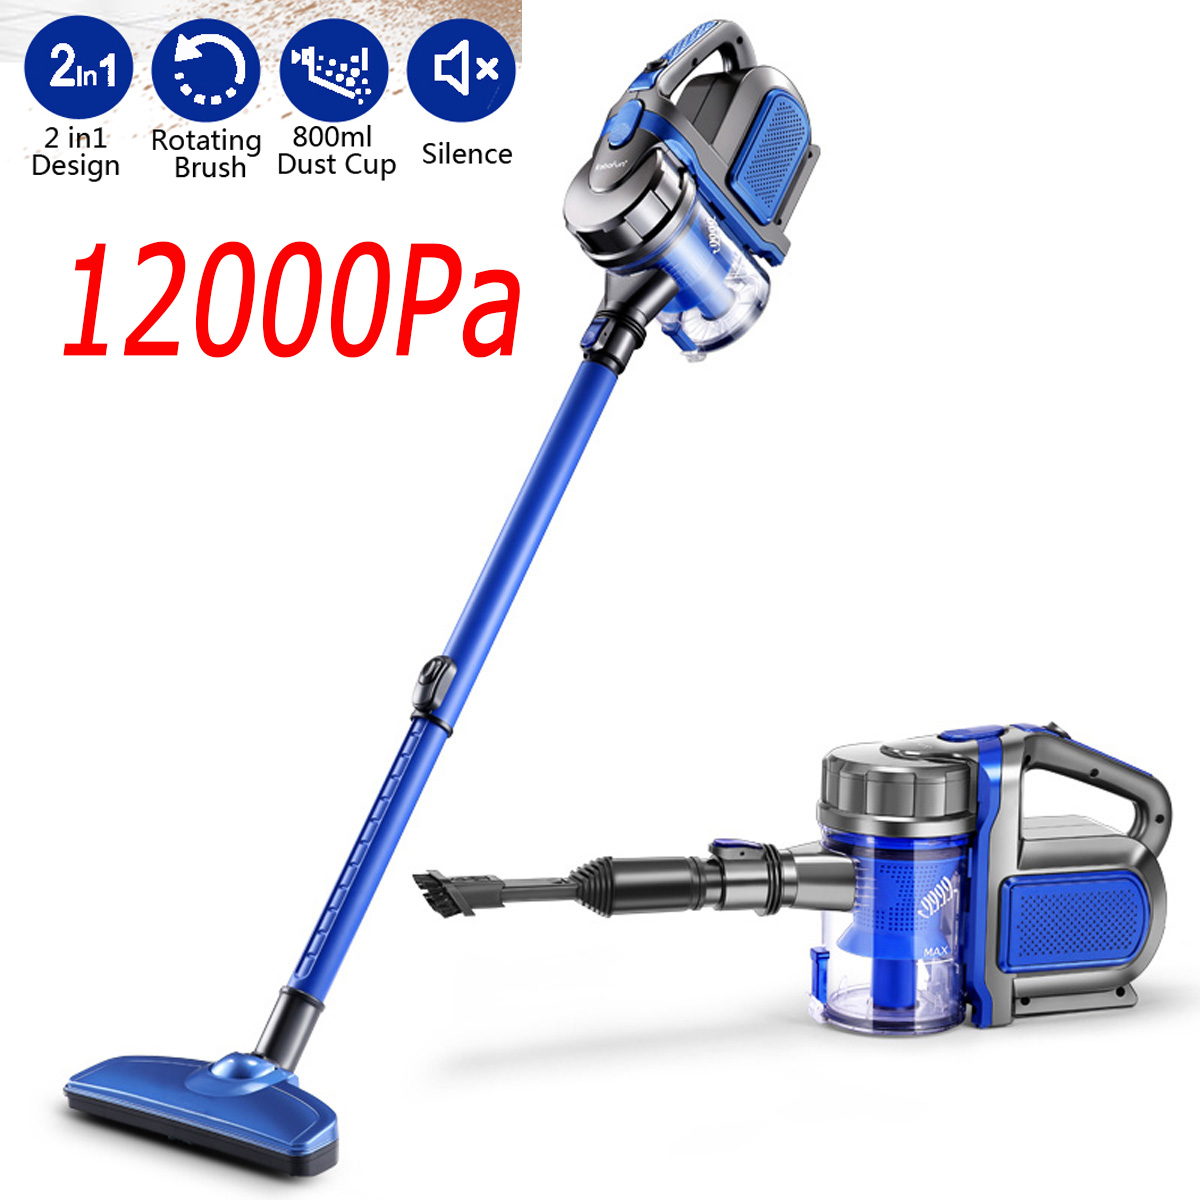 2 In 1 Handheld Cord Vacuum Cleaner Cyclone 12000Pa Strong Suction Dust Collector Handheld Vacuum Cleaner